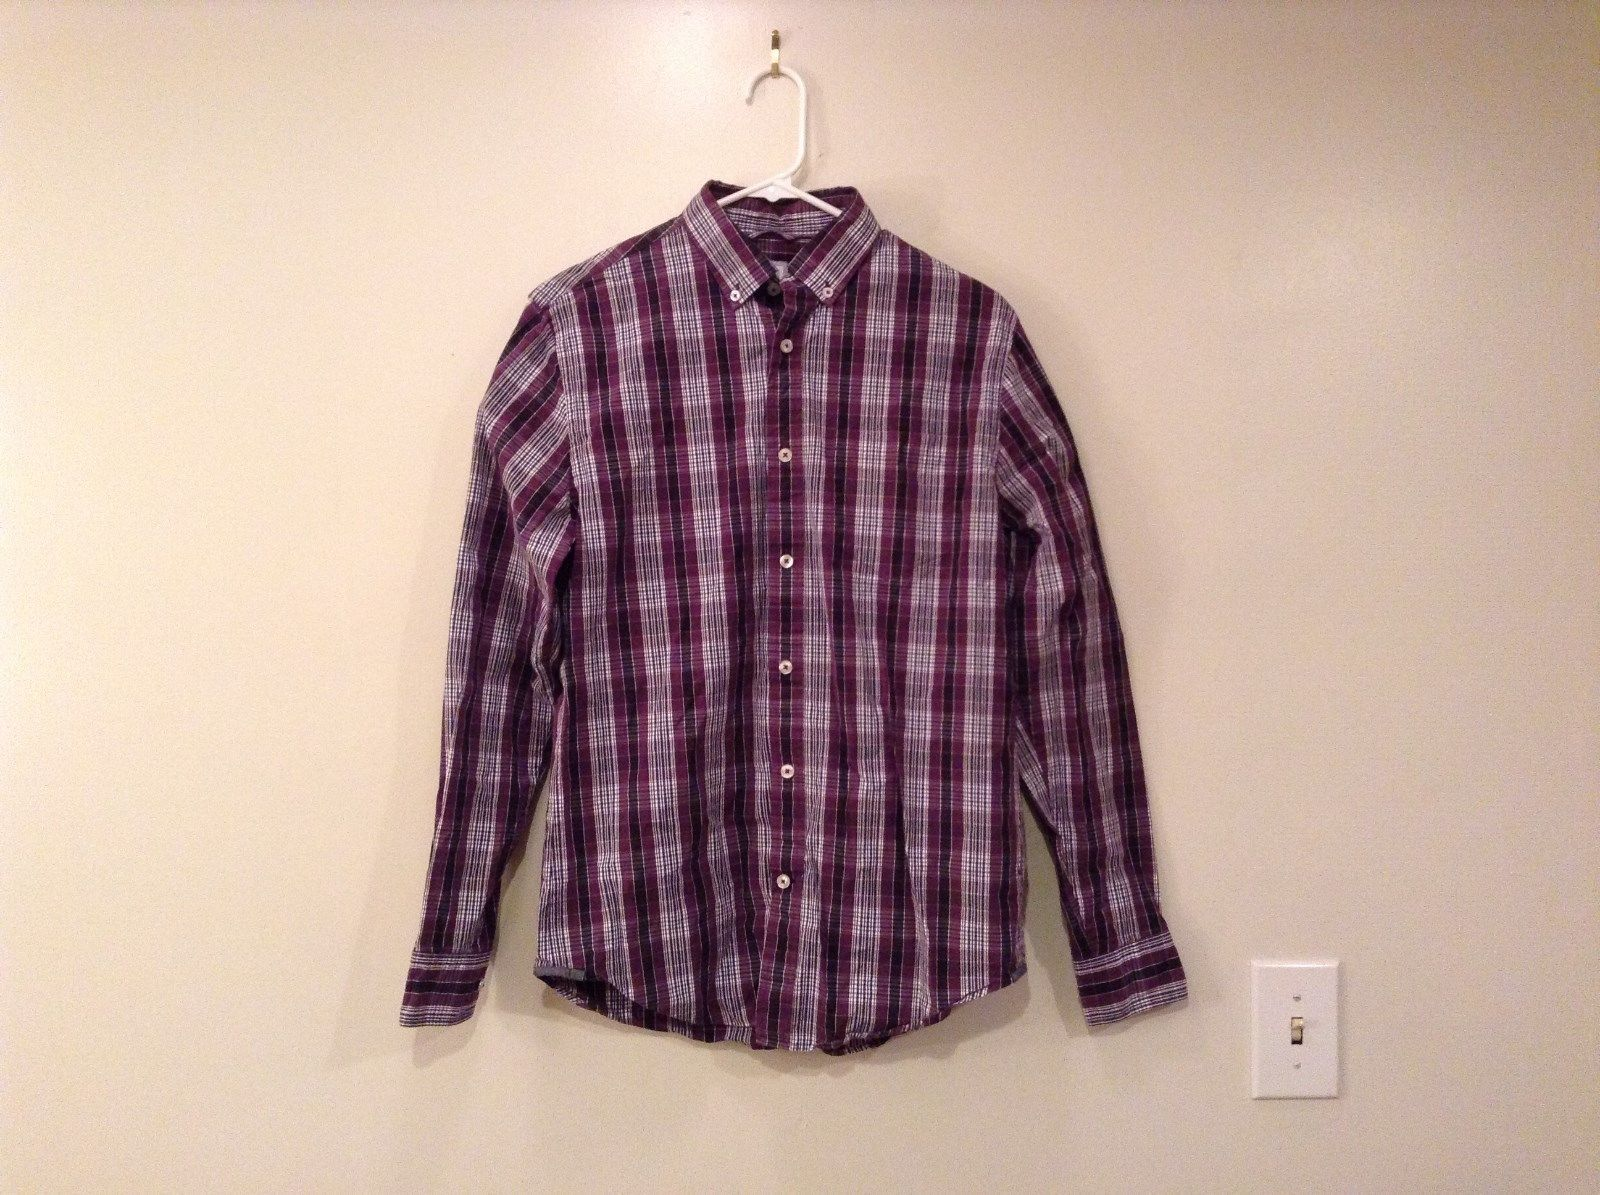 JCP 80s Size Small Long Sleeve Button Up Shirt Violet Navy Blue White Stripes